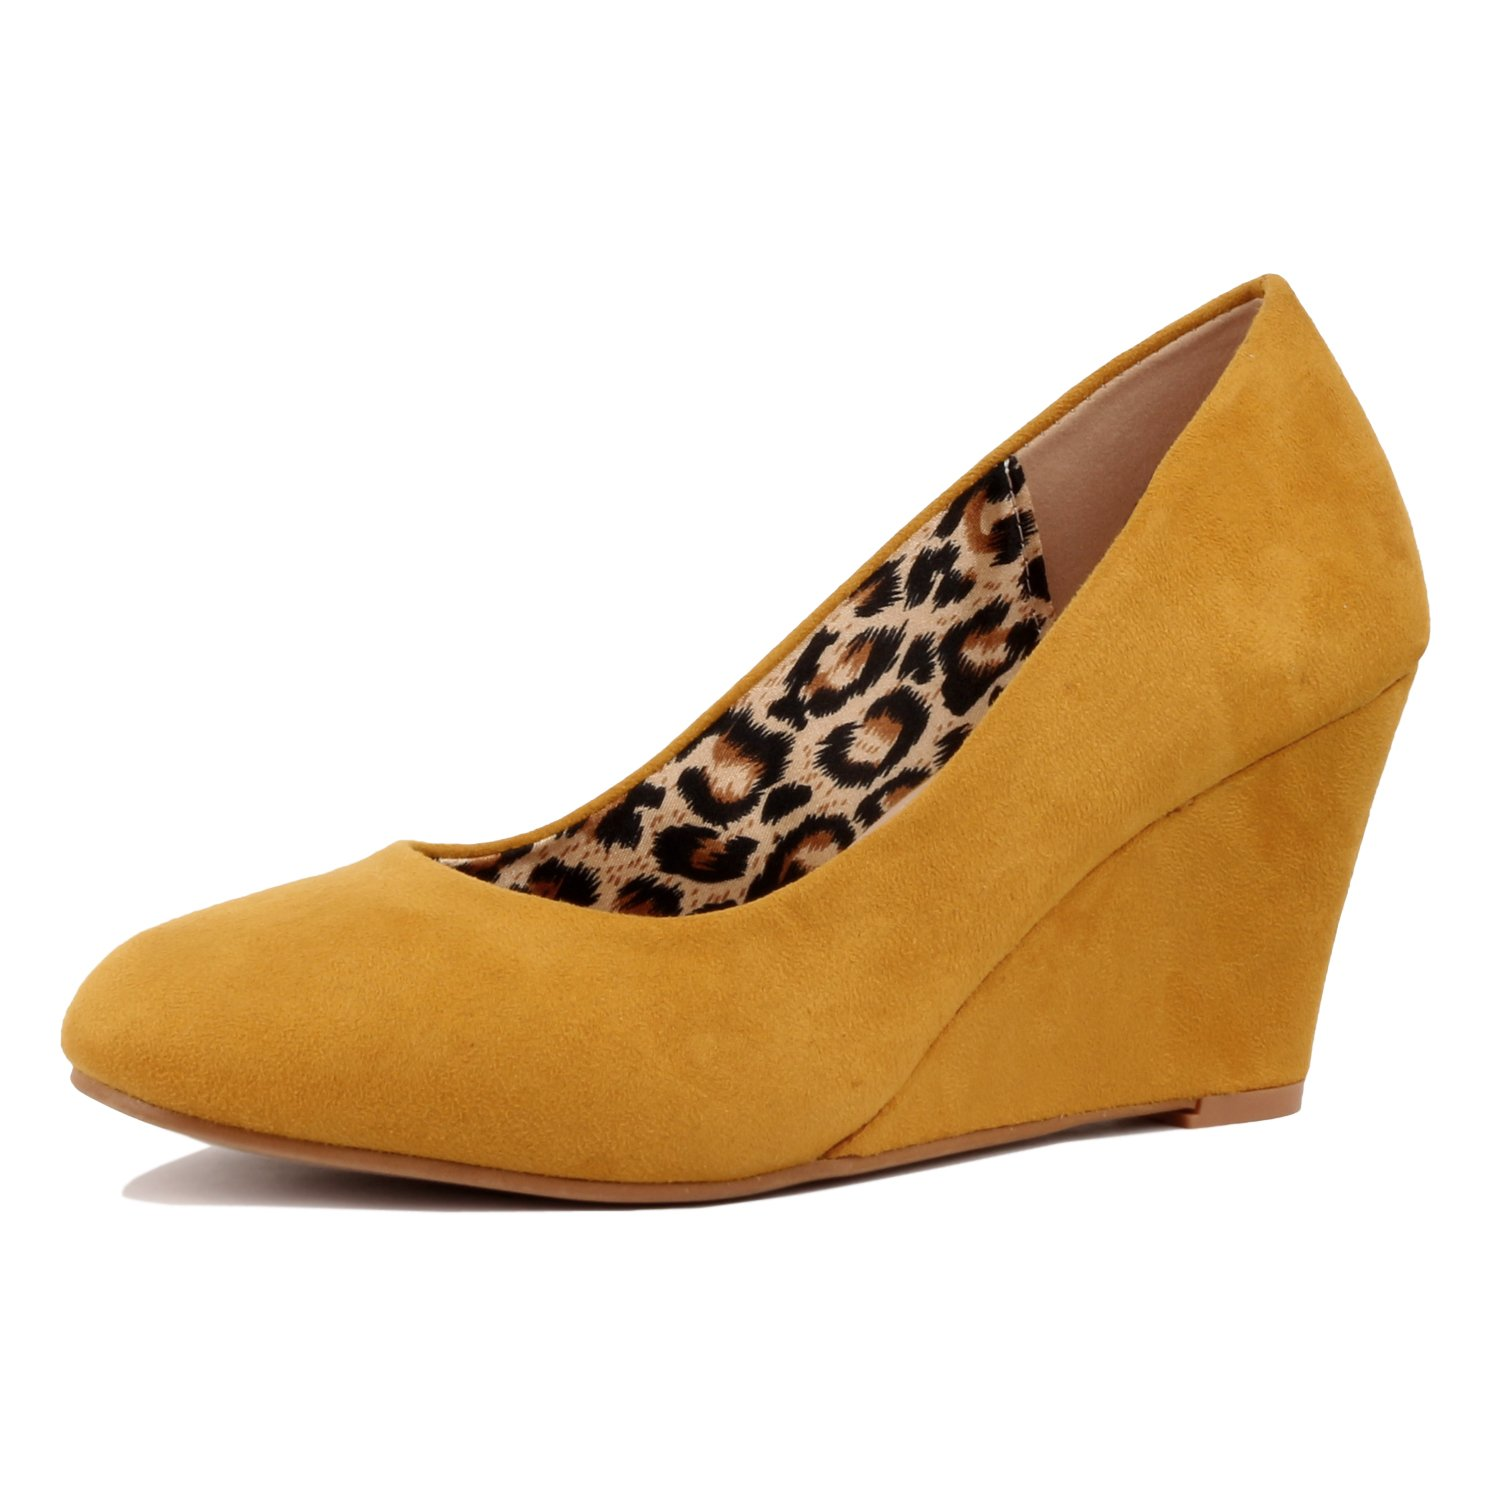 Guilty Shoes - Classic Office Wedge - Comfort Soft Mid Low Heel Round Toe Wedge Pumps (8 B(M) US, Yellow Suede)